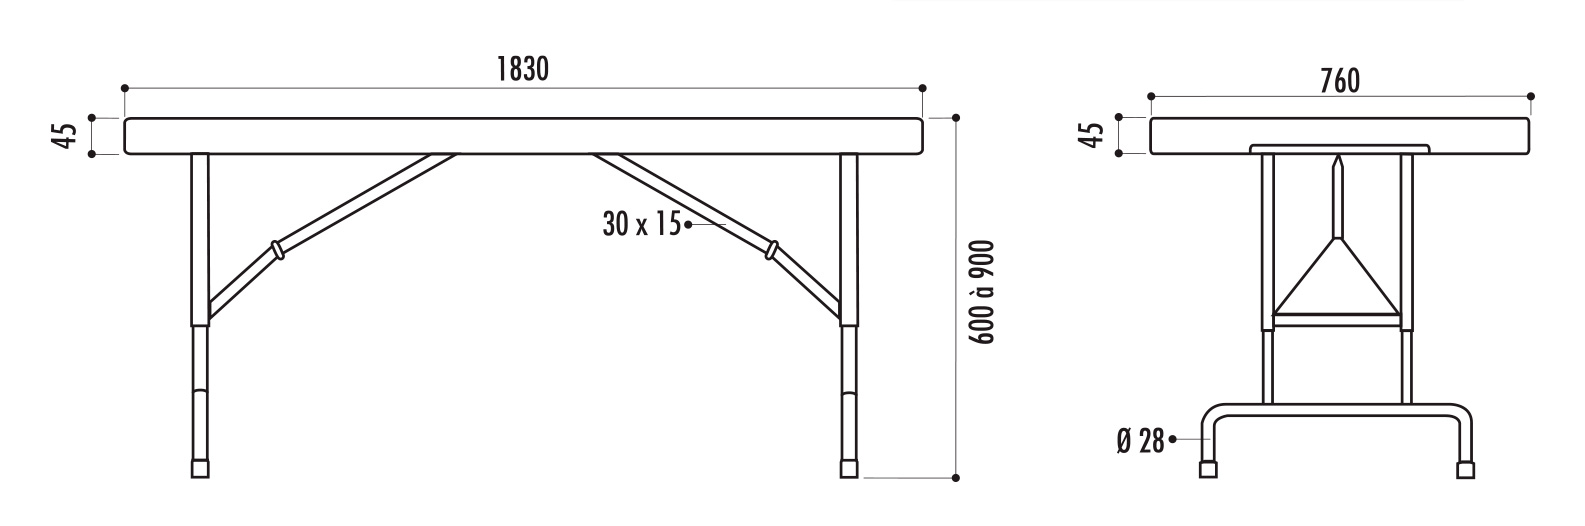 dimensions de la table pliante polypro réglable - cofradis